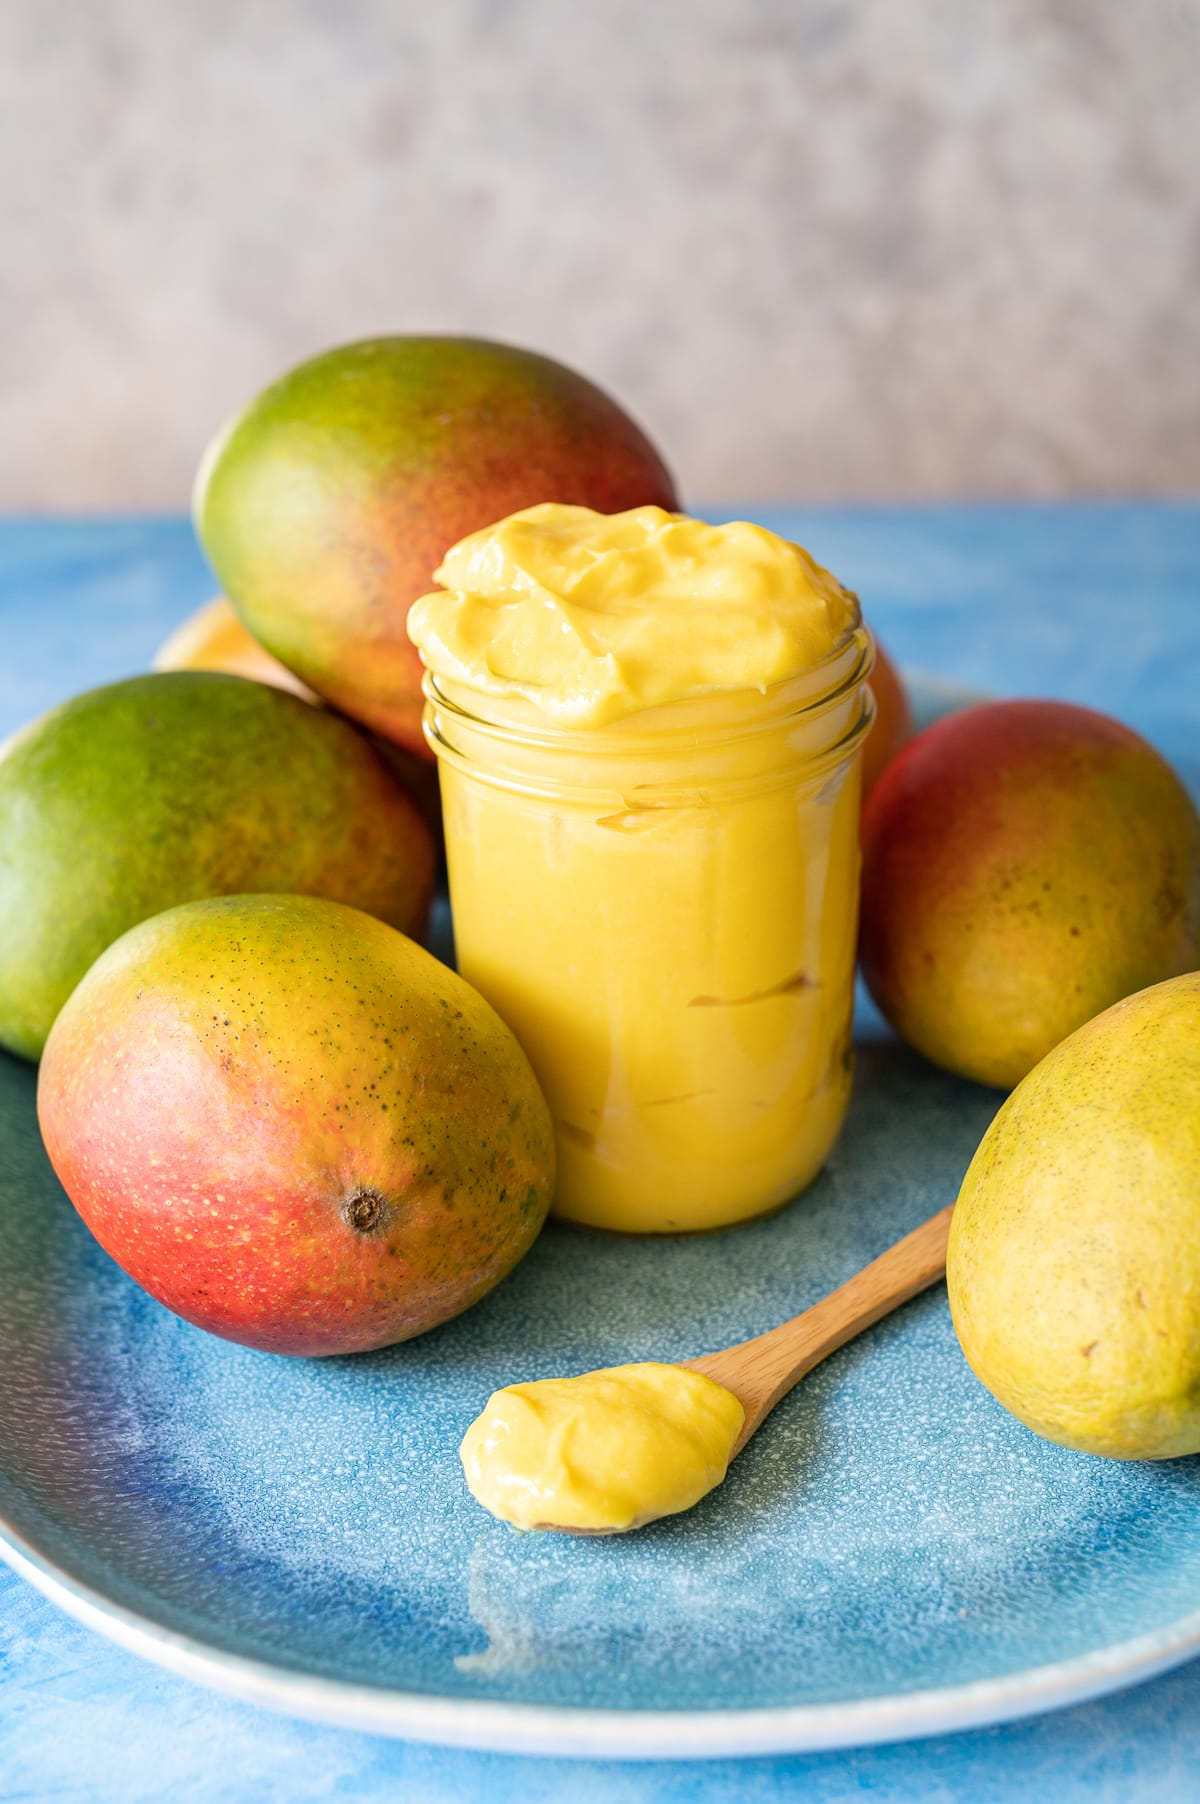 yellow mango curd in a jar on a blue plate with whole mangoes